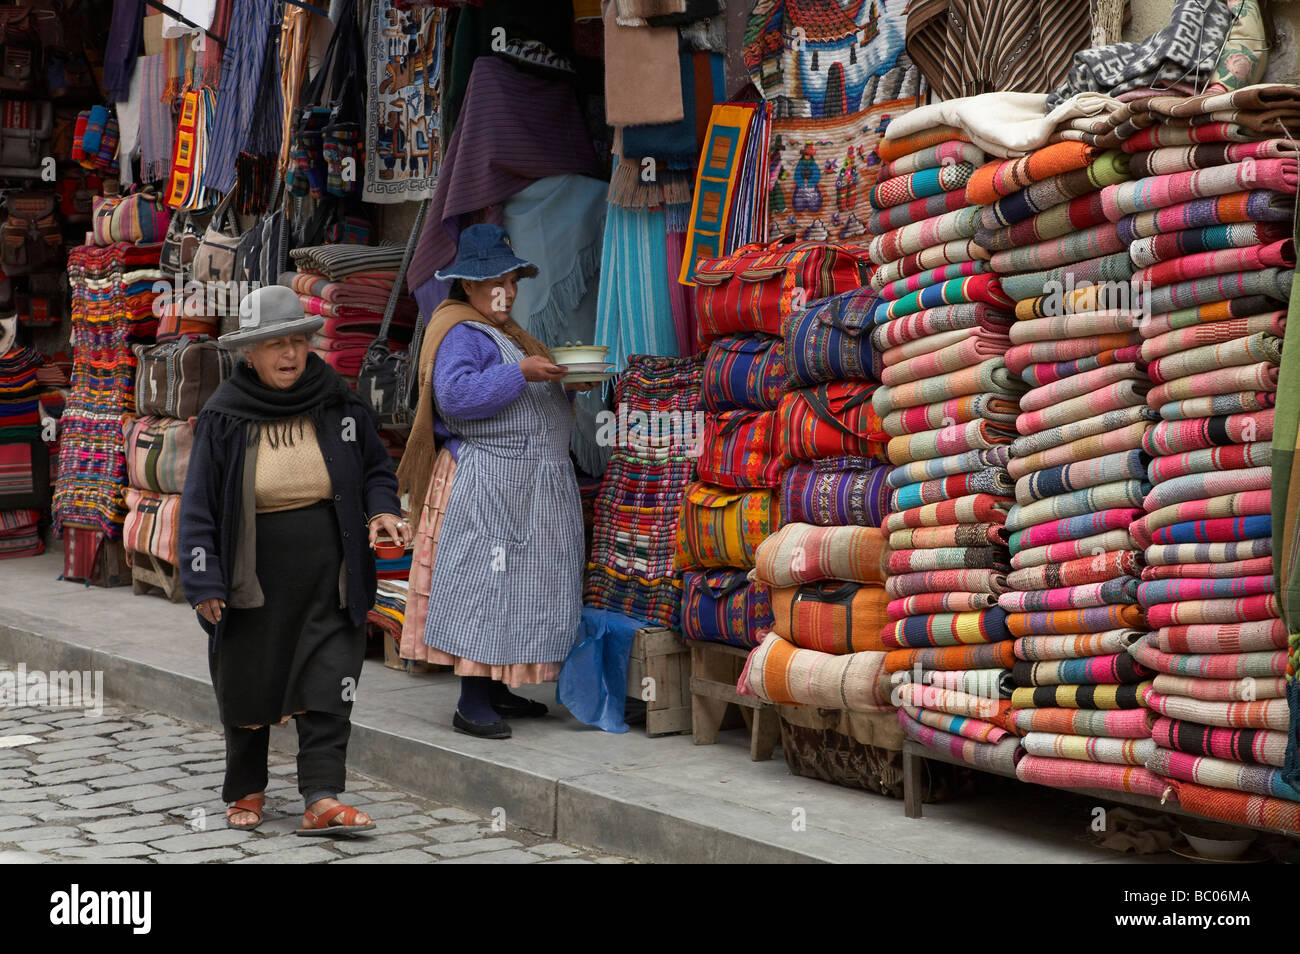 Painet jq3399 bolivia shop selling ponchos weavings la paz america south latin indigenous native economy trade street - Stock Image